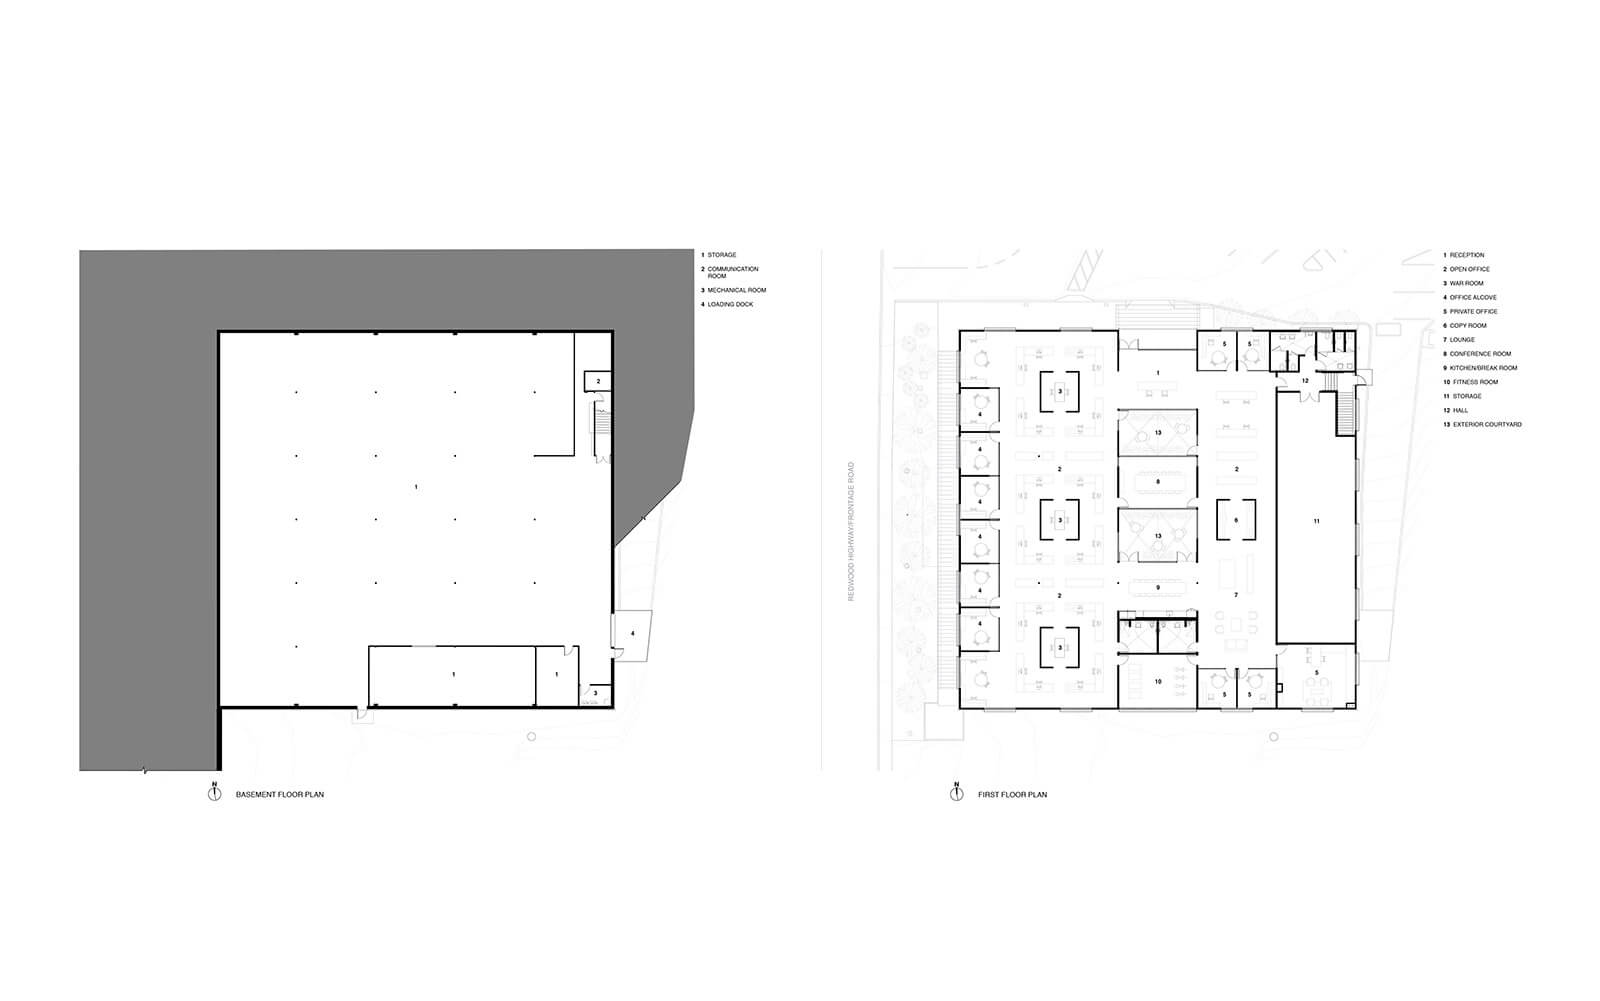 studio vara case study redwood highway drawing floor plans